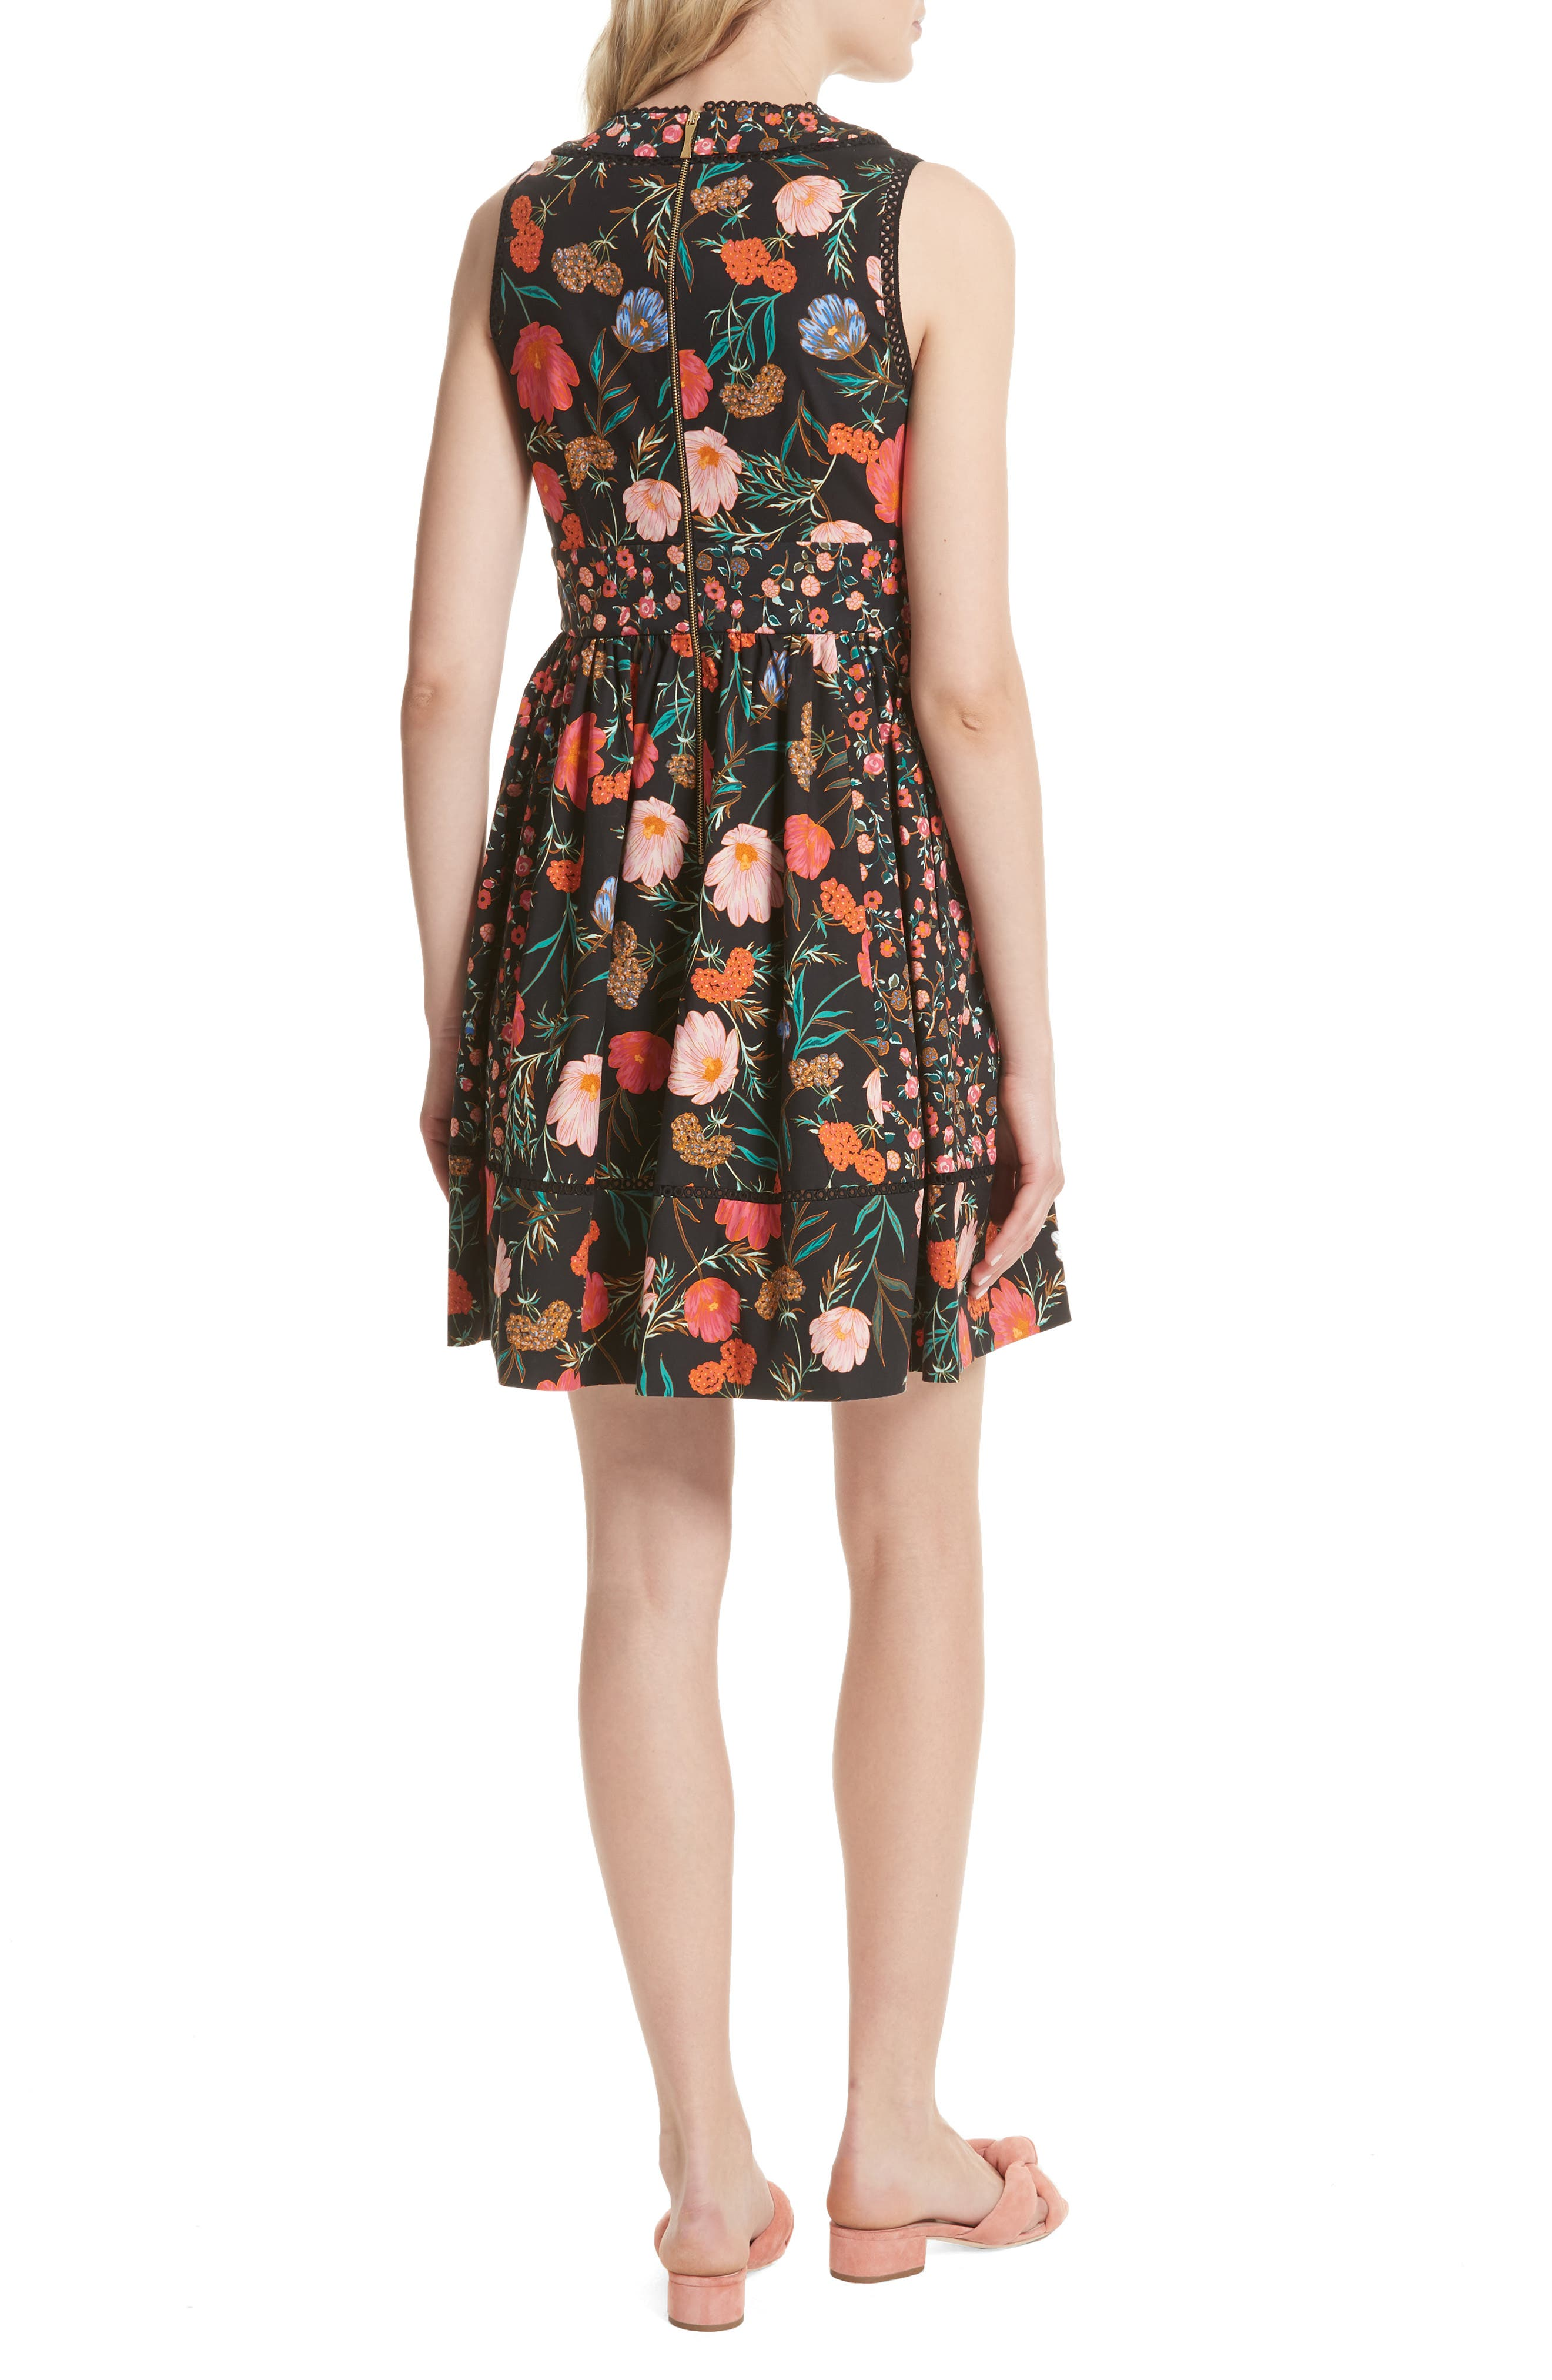 blossom sleeveless fit & flare dress,                             Alternate thumbnail 2, color,                             001